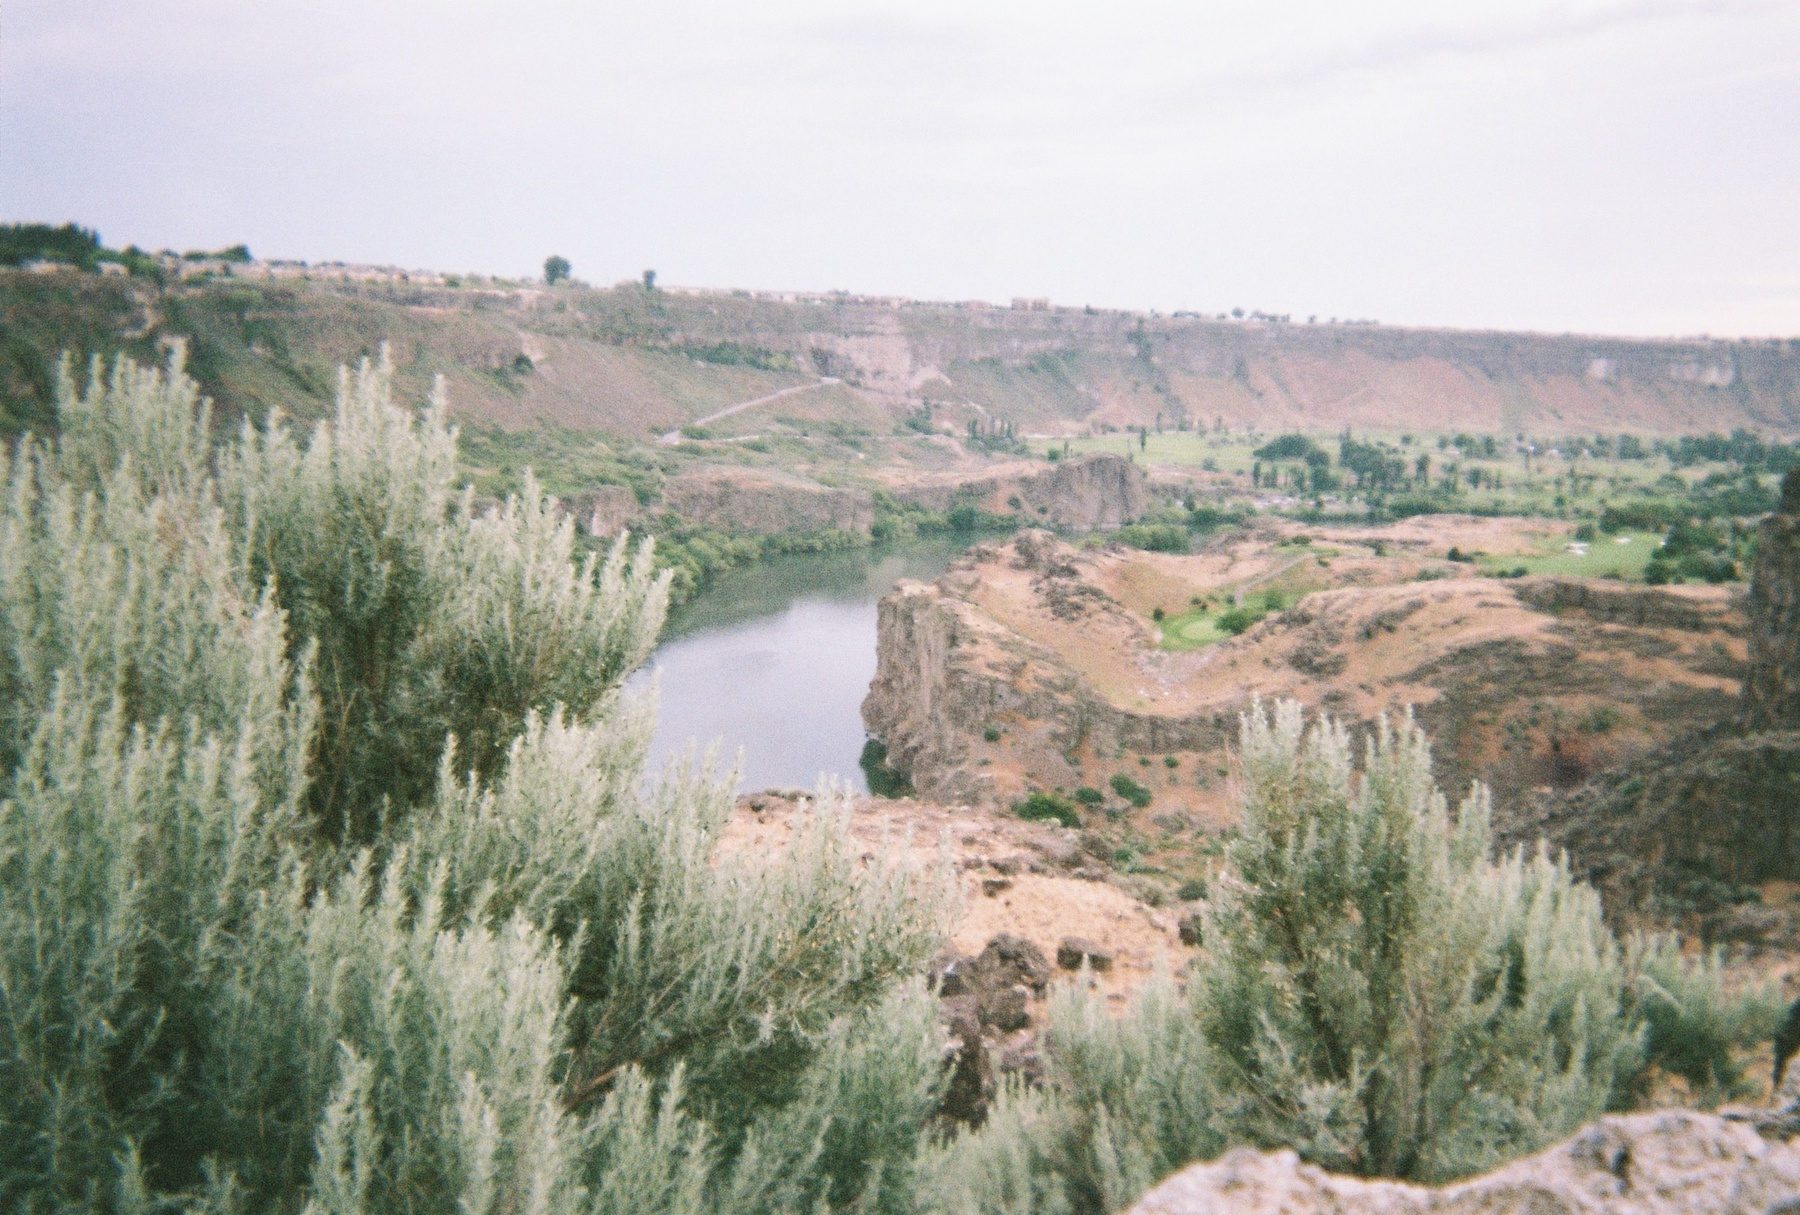 River from the highway. Twin Falls, ID.